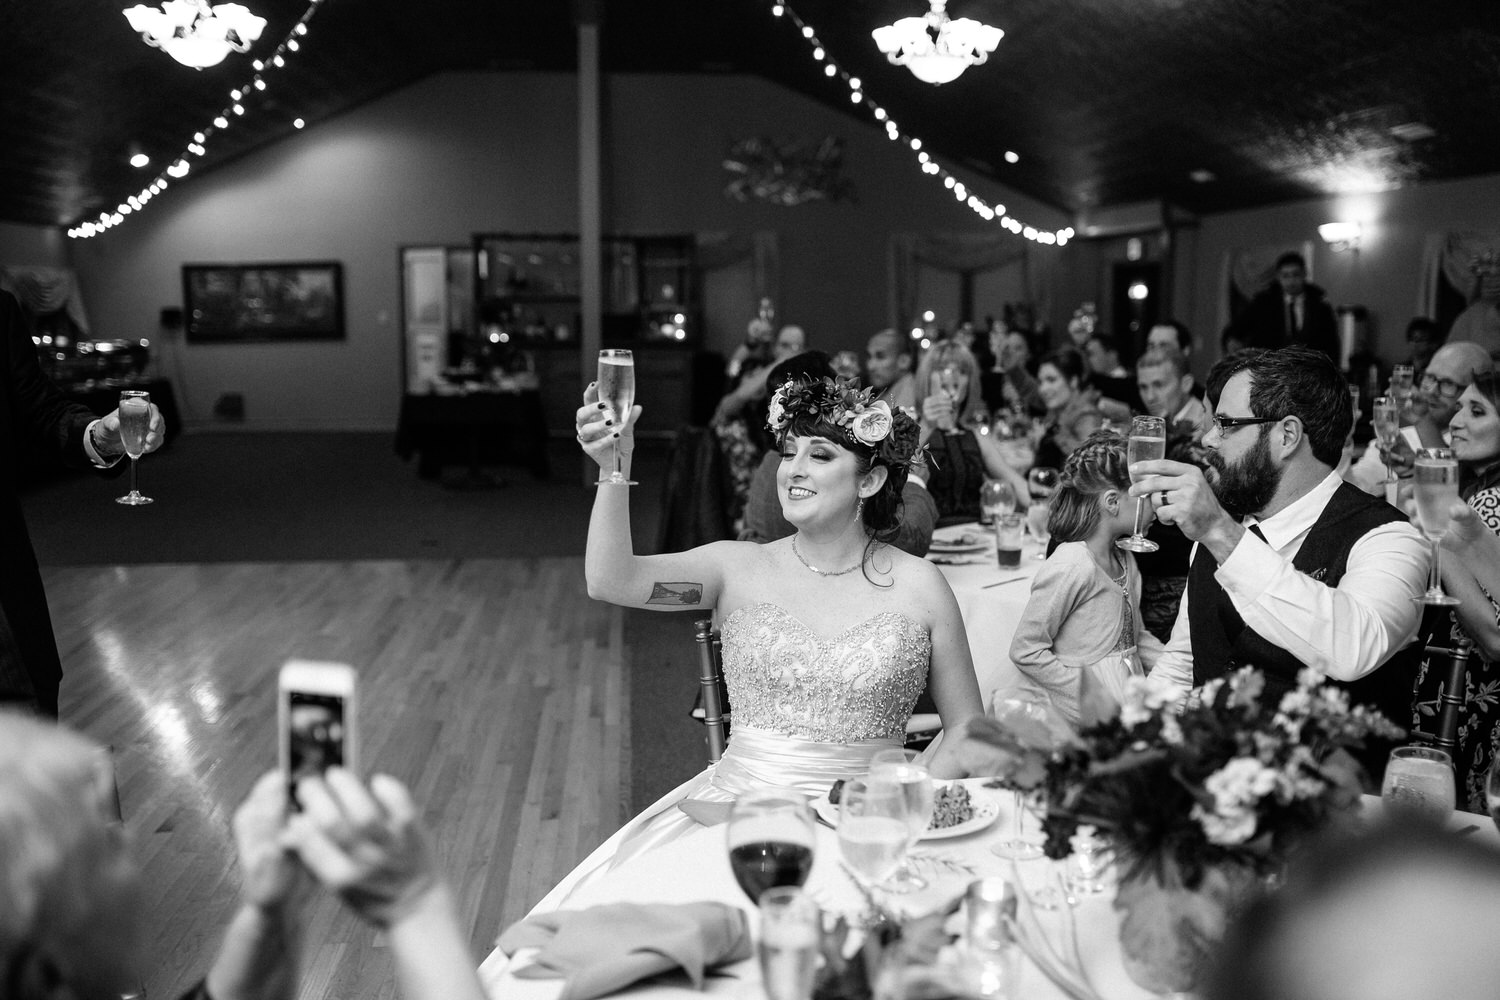 Riverview restaurant wedding photograher Troutdale Oregon Columbia river gorge 0144.JPG